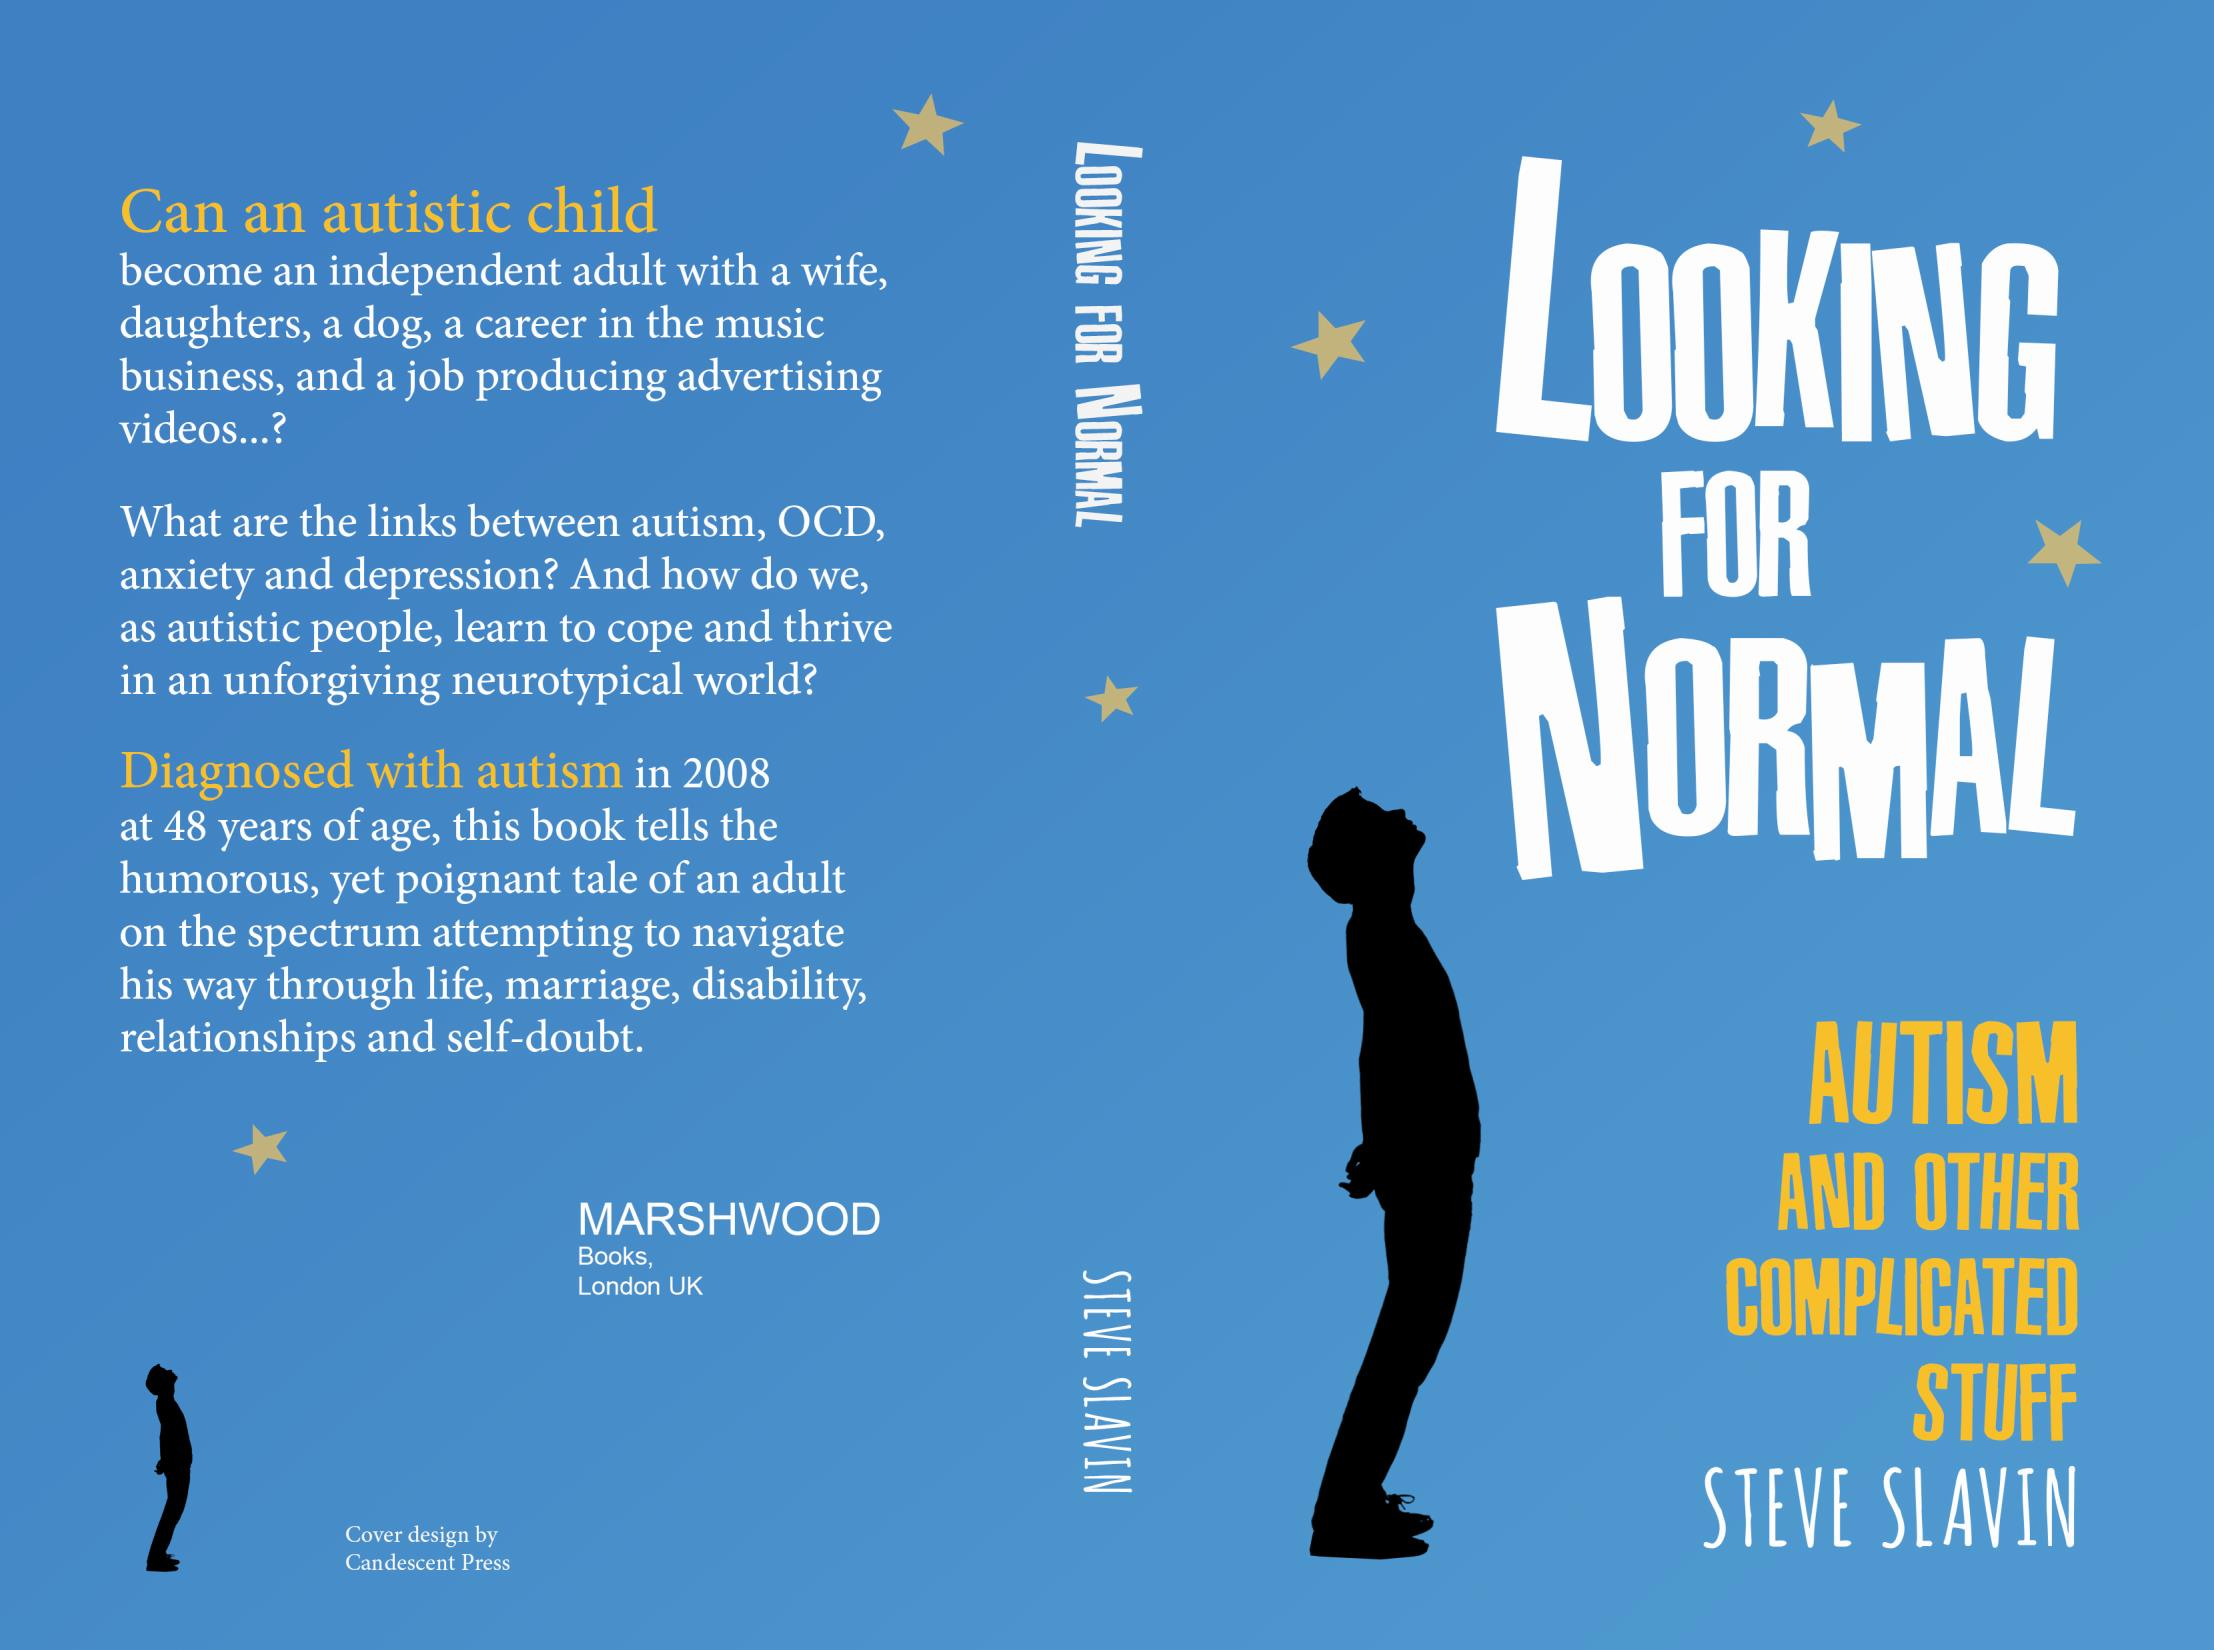 LOOKING FOR NORMAL AUTISM BOOK